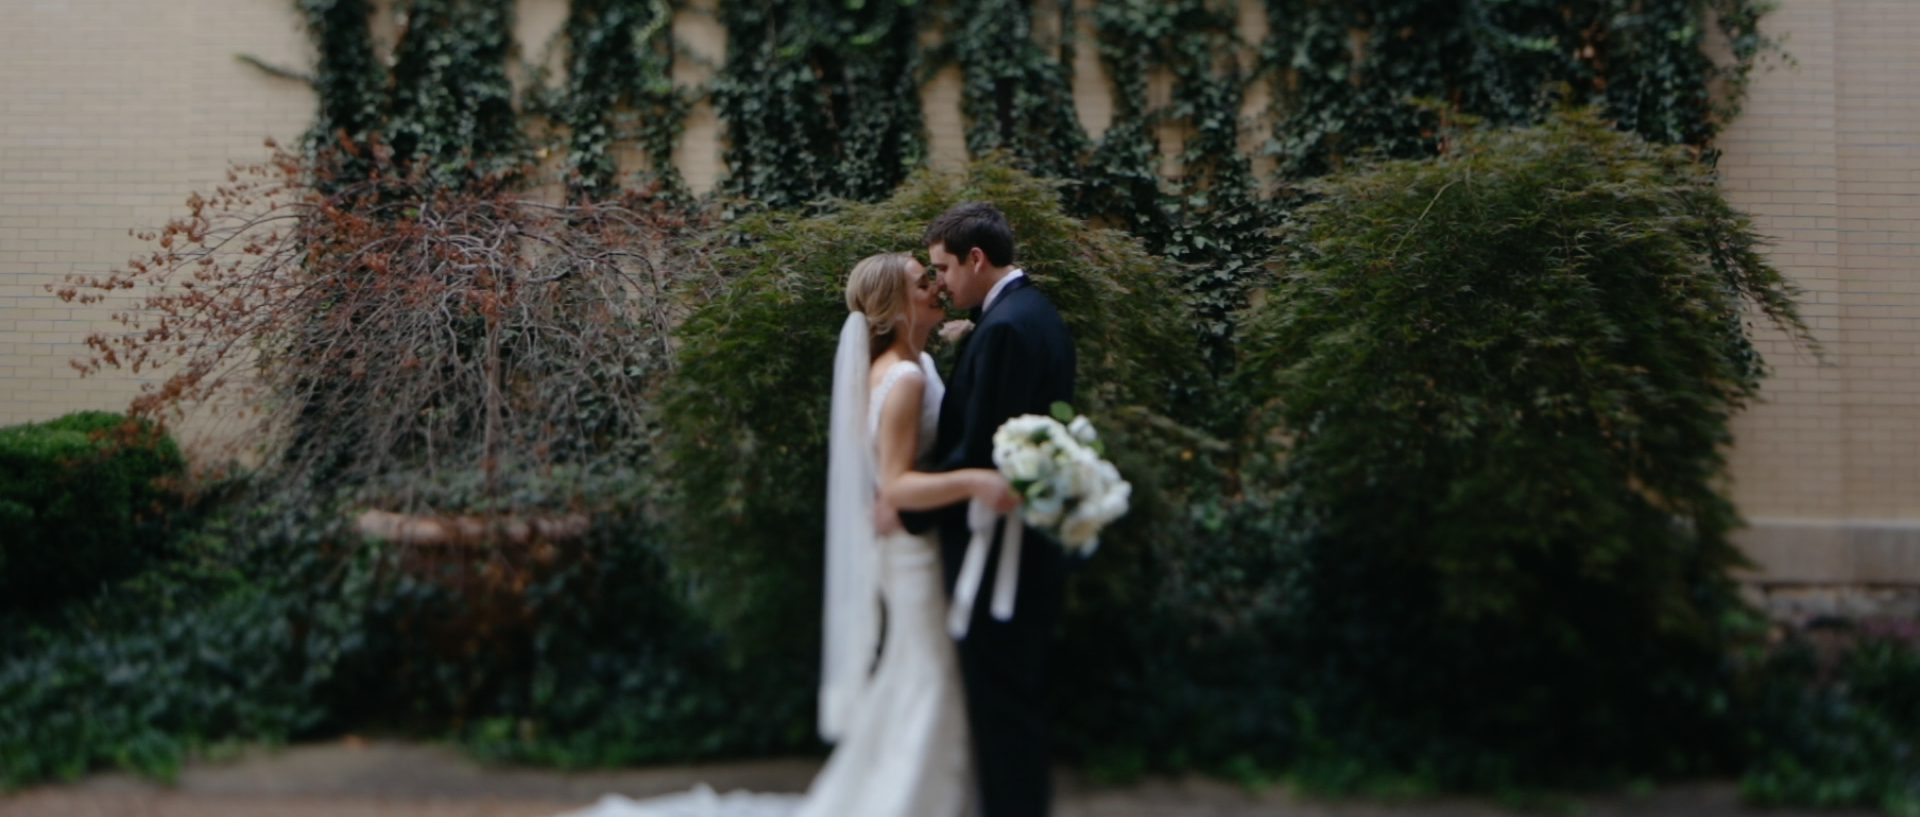 jaclyn-jamie-bride-groom-nashville-wedding-videography-amavi-films.png